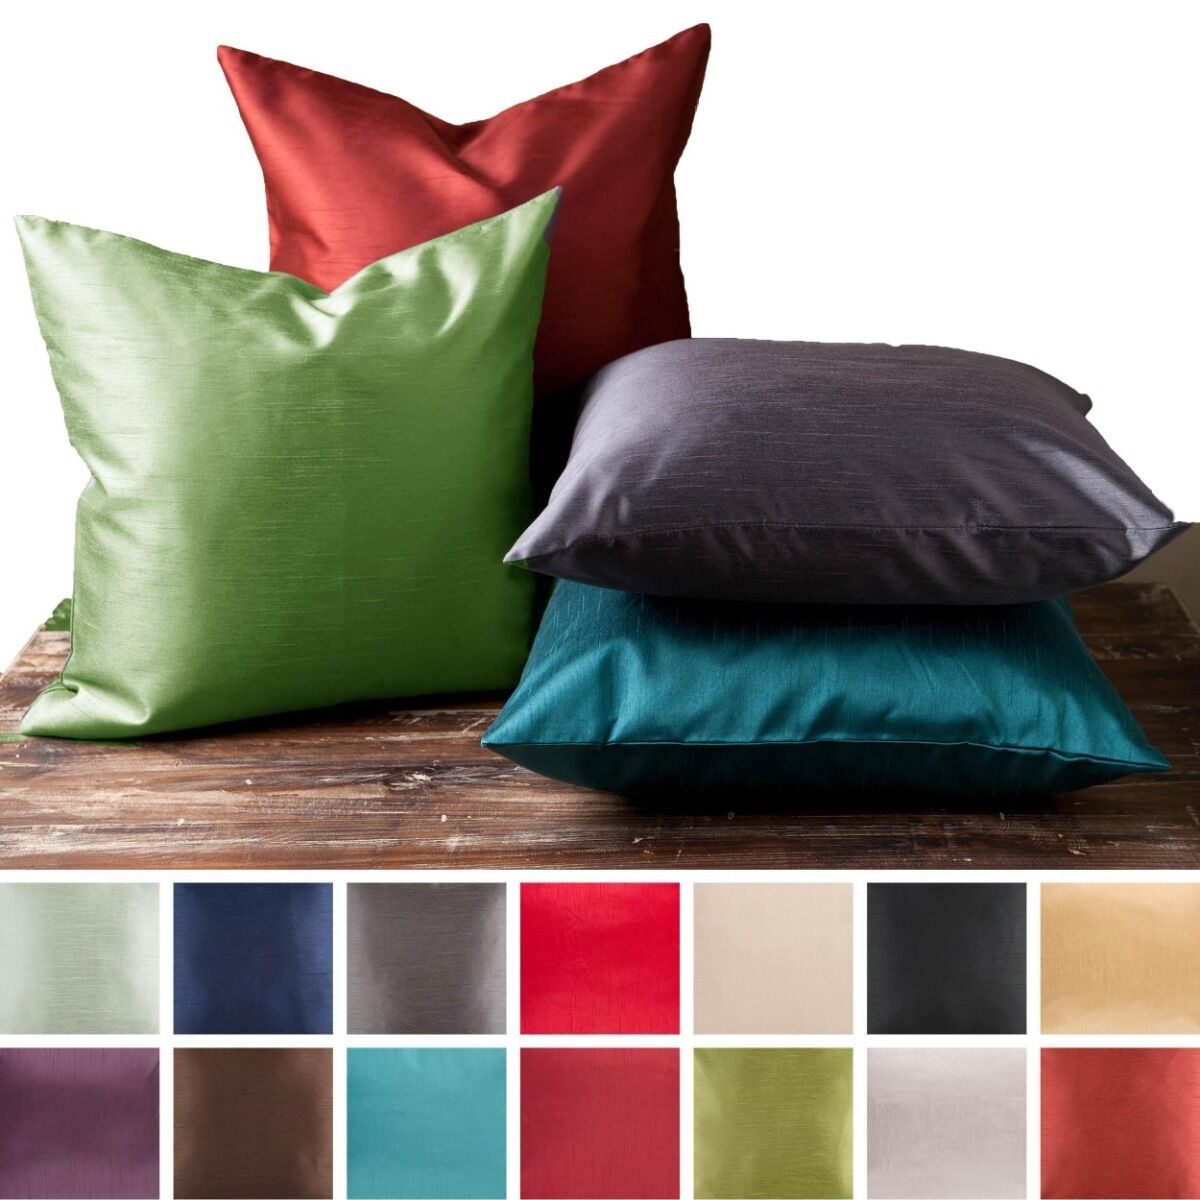 2 Piece Euro Shams Cover Case Decorative Pillow Zippered Closure MANY MORE Color Bedding